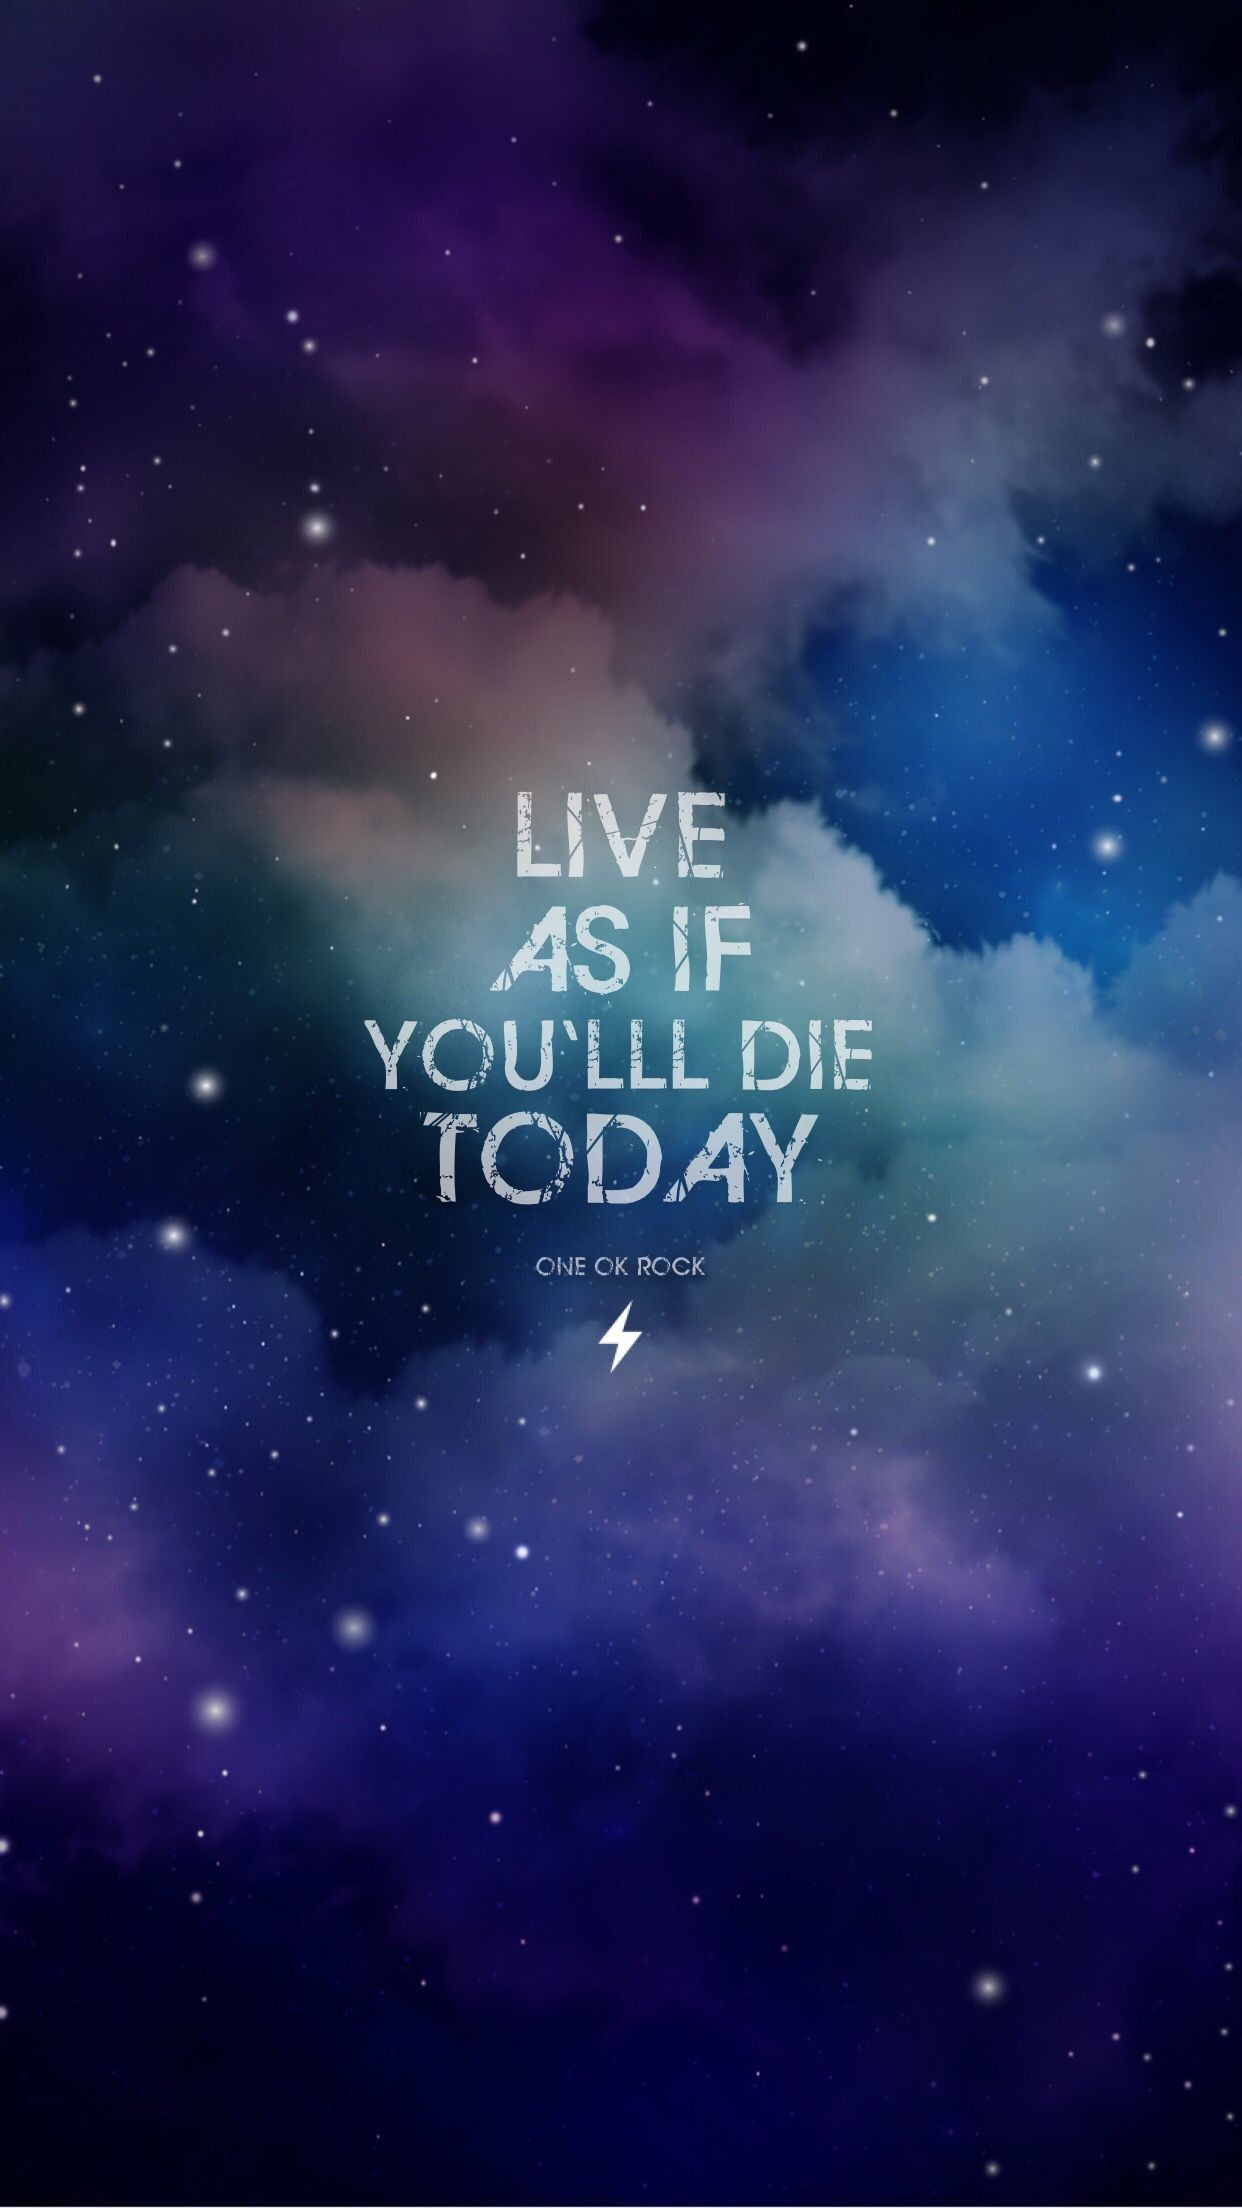 Galaxy Quotes Wallpapers - Top Free Galaxy Quotes Backgrounds